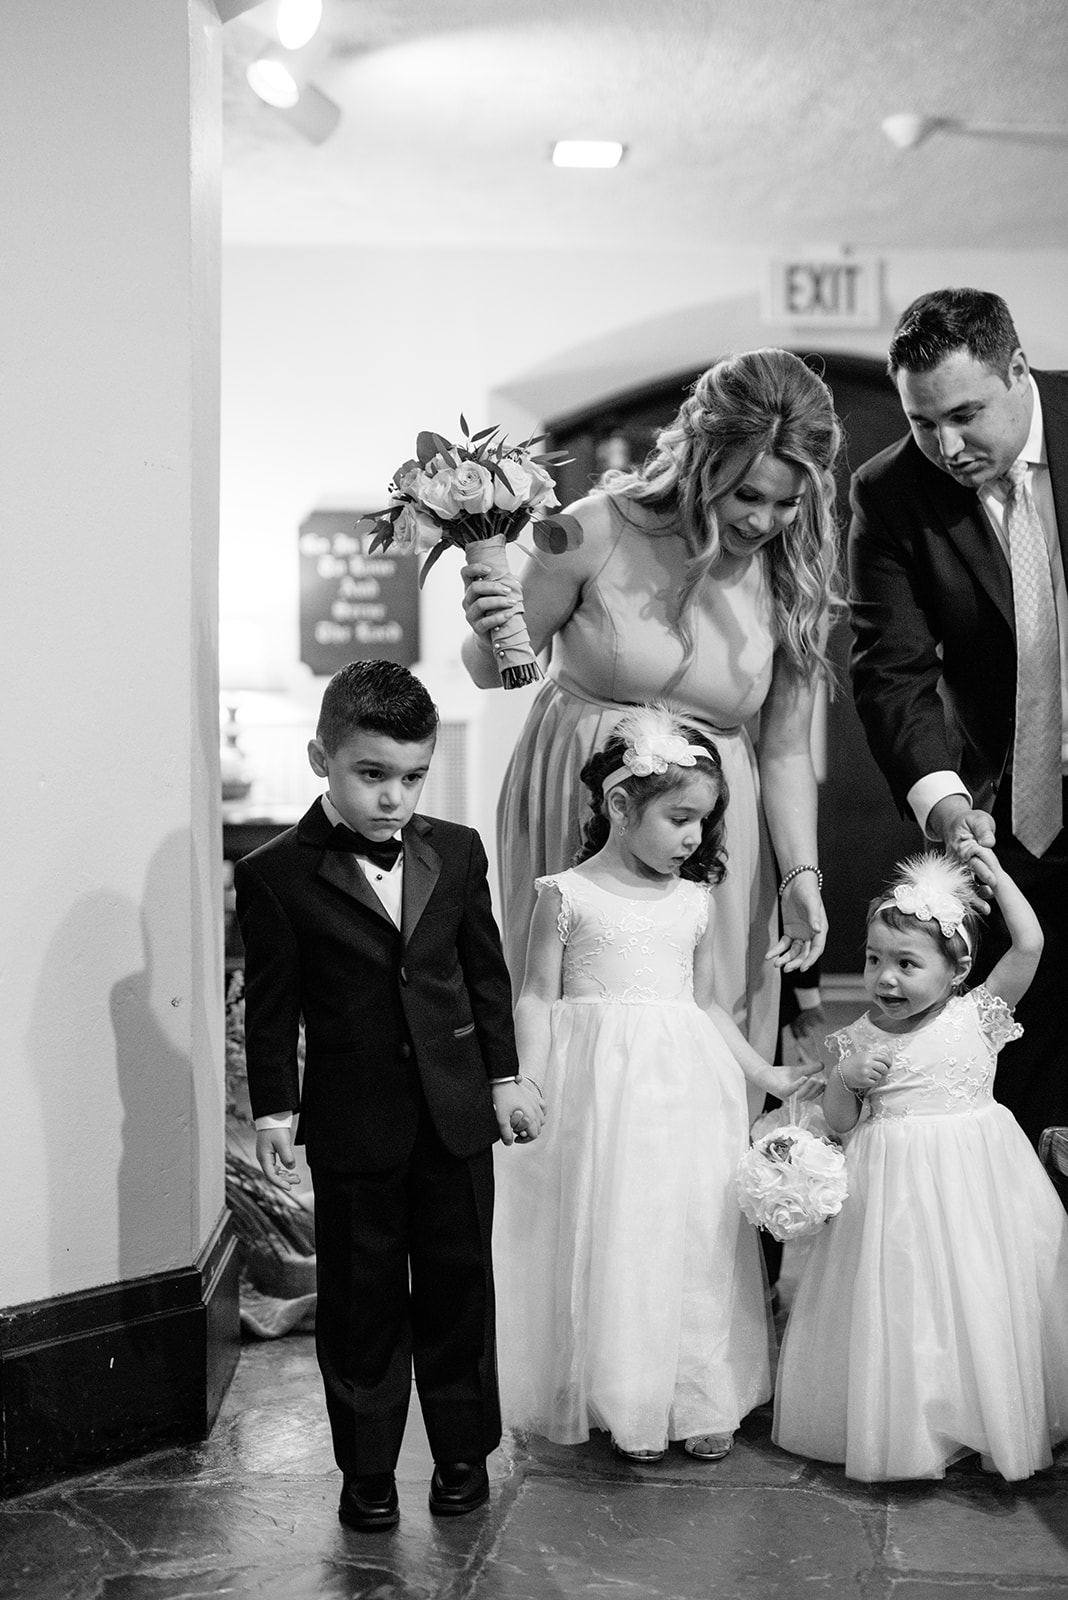 The_Park_Savoy_Wedding-_Lauren_and_Mike-Highlights-New_Jersey-_Olivia_Christina_Photo-21.jpg